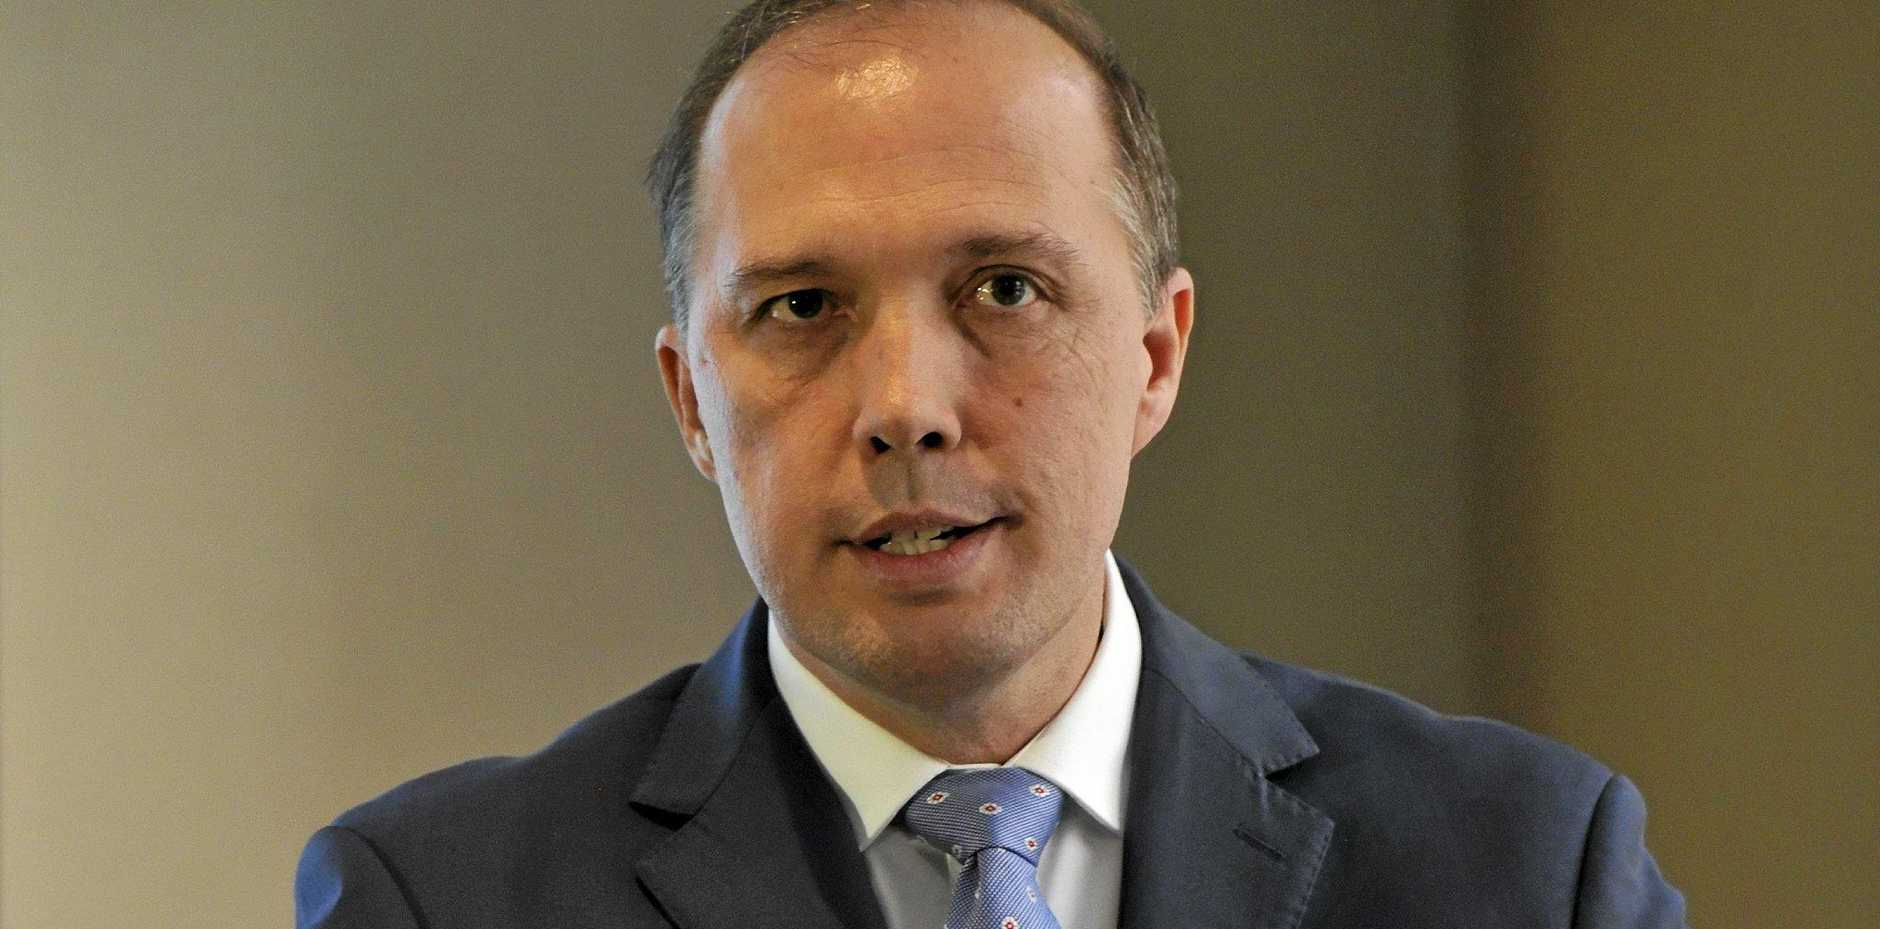 Minister for Immigration Peter Dutton speaks to the media in Sydney, Friday, April 29, 2016. (AAP Image/Joel Carrett)